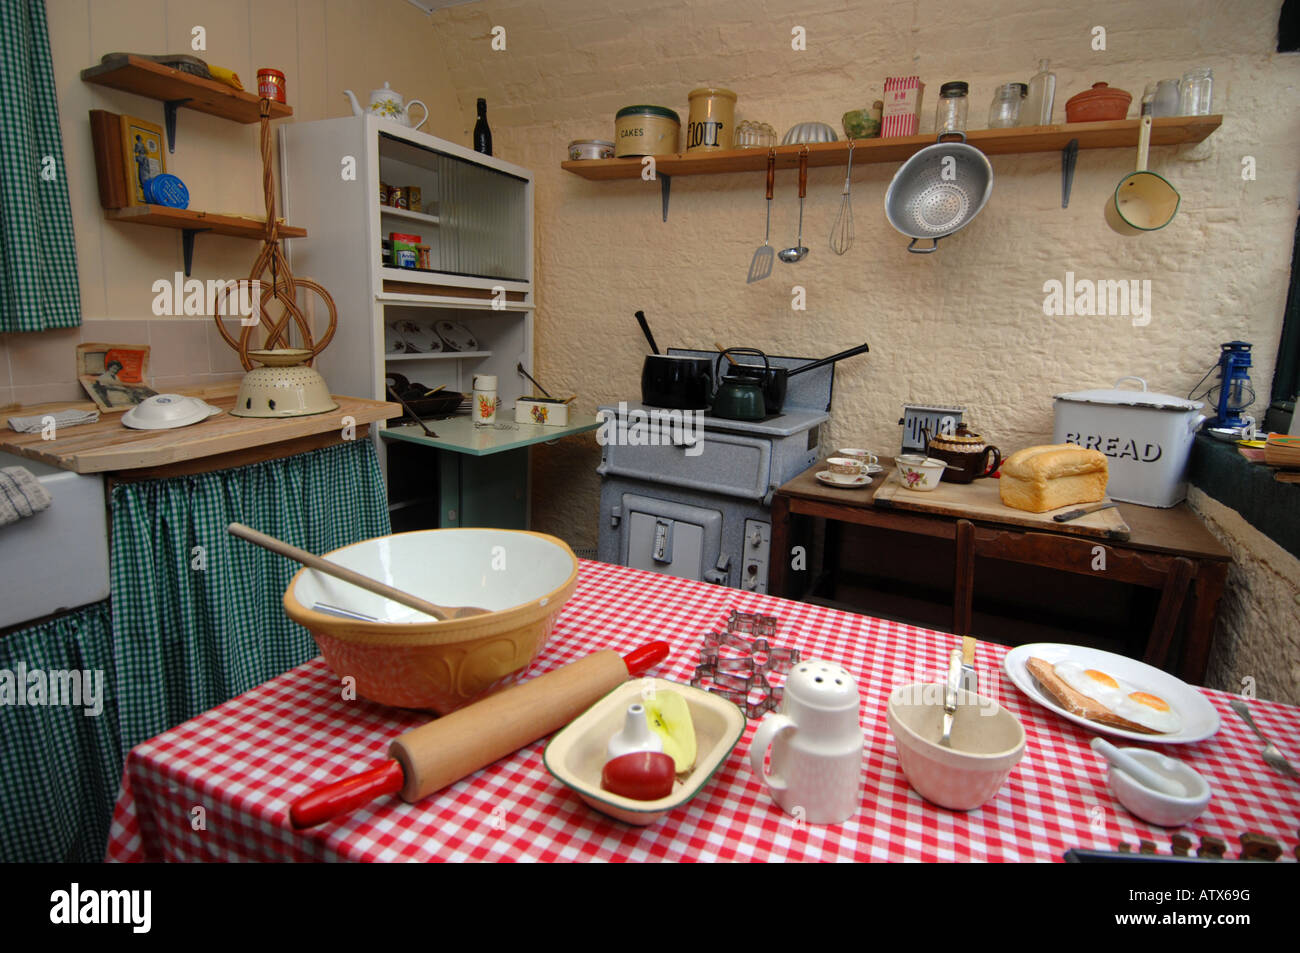 1940s Kitchen Stock Photos & 1940s Kitchen Stock Images - Alamy on red white and blue kitchen ideas, small shabby chic kitchen ideas, small cottage kitchen ideas, cabinet small kitchen remodel ideas, 1940s kitchen remodel ideas, vintage kitchen ideas, painted kitchen cabinet ideas,